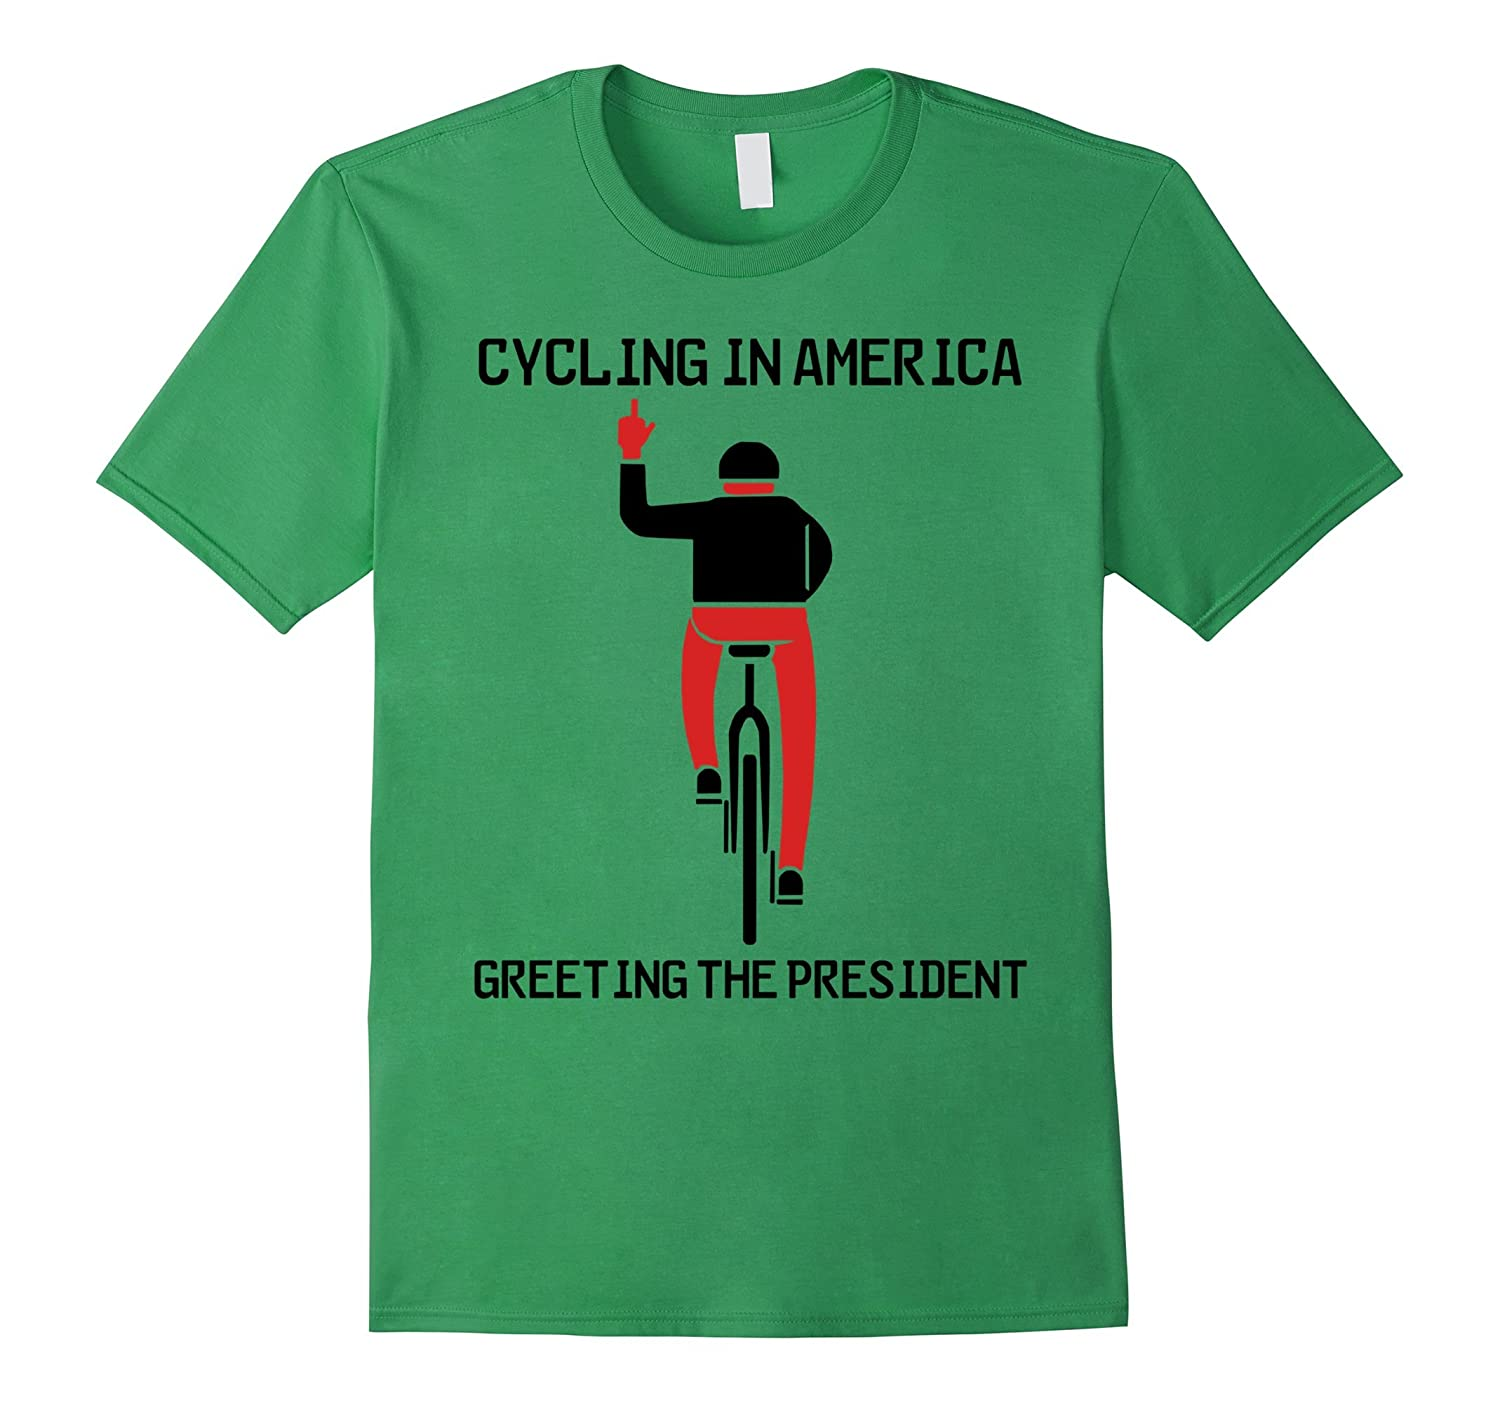 Cycling in America greeting the President Trump T-Shirt Mens-Rose